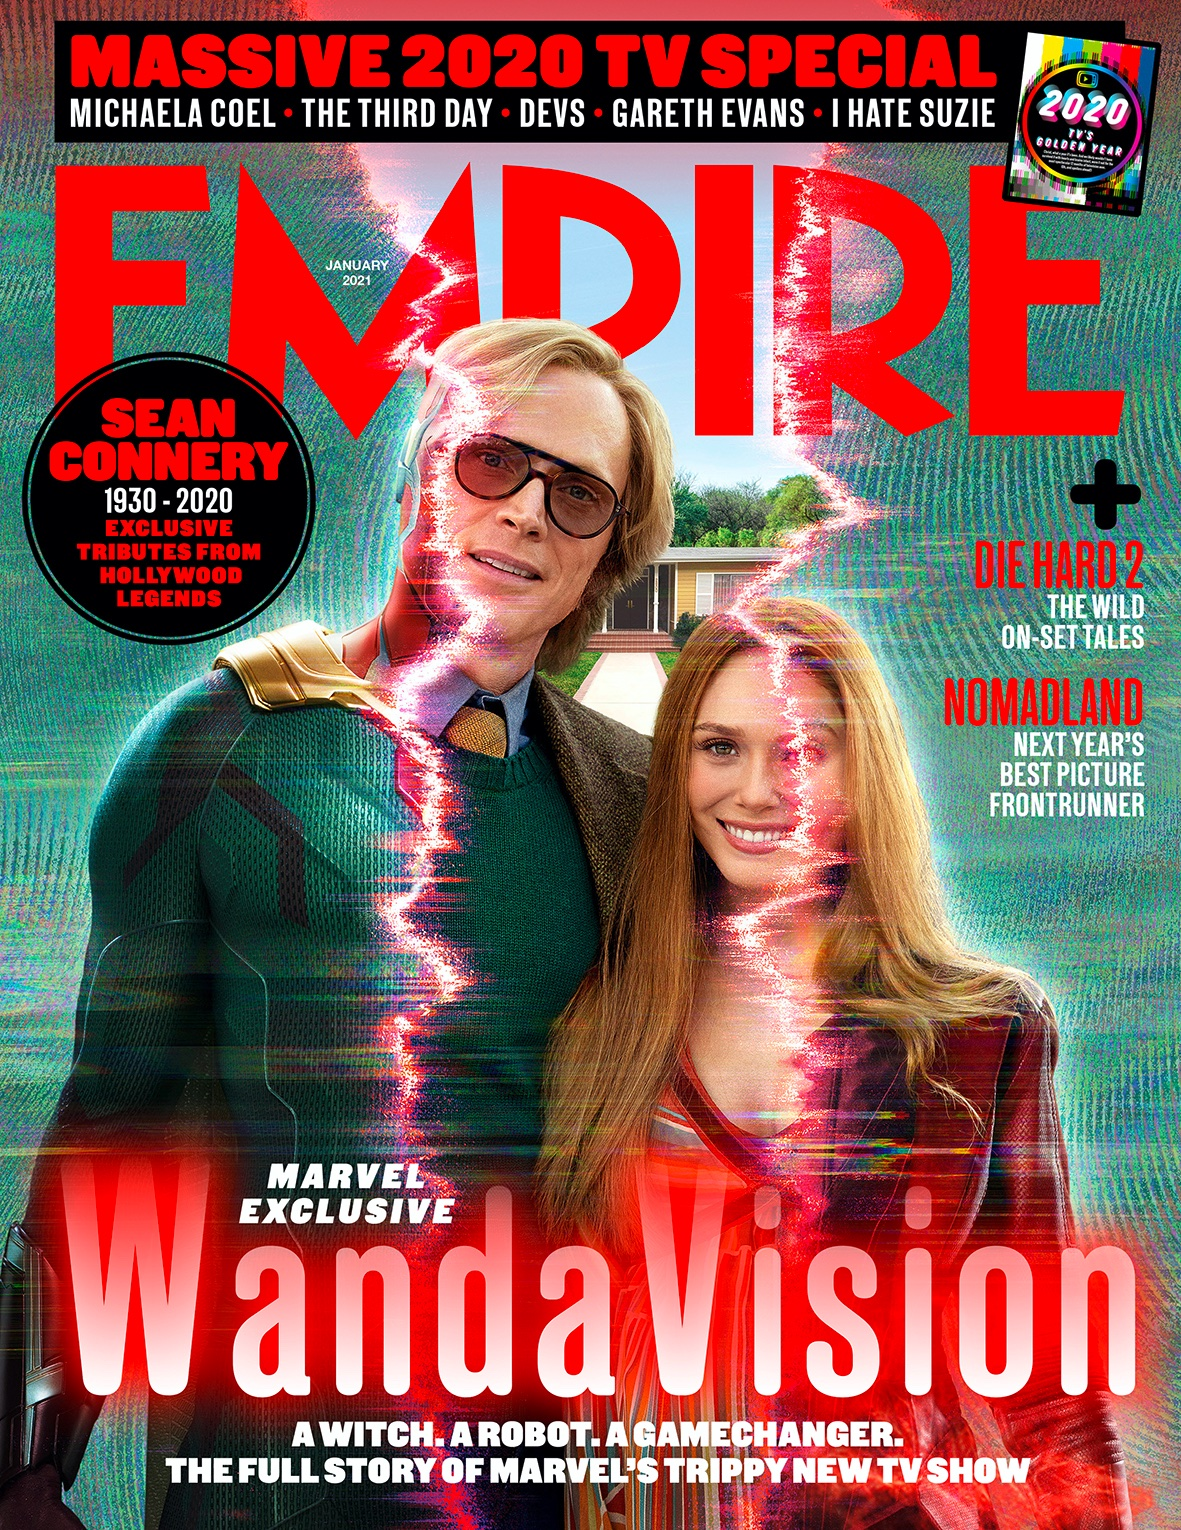 WandaVision Empire Magazine cover